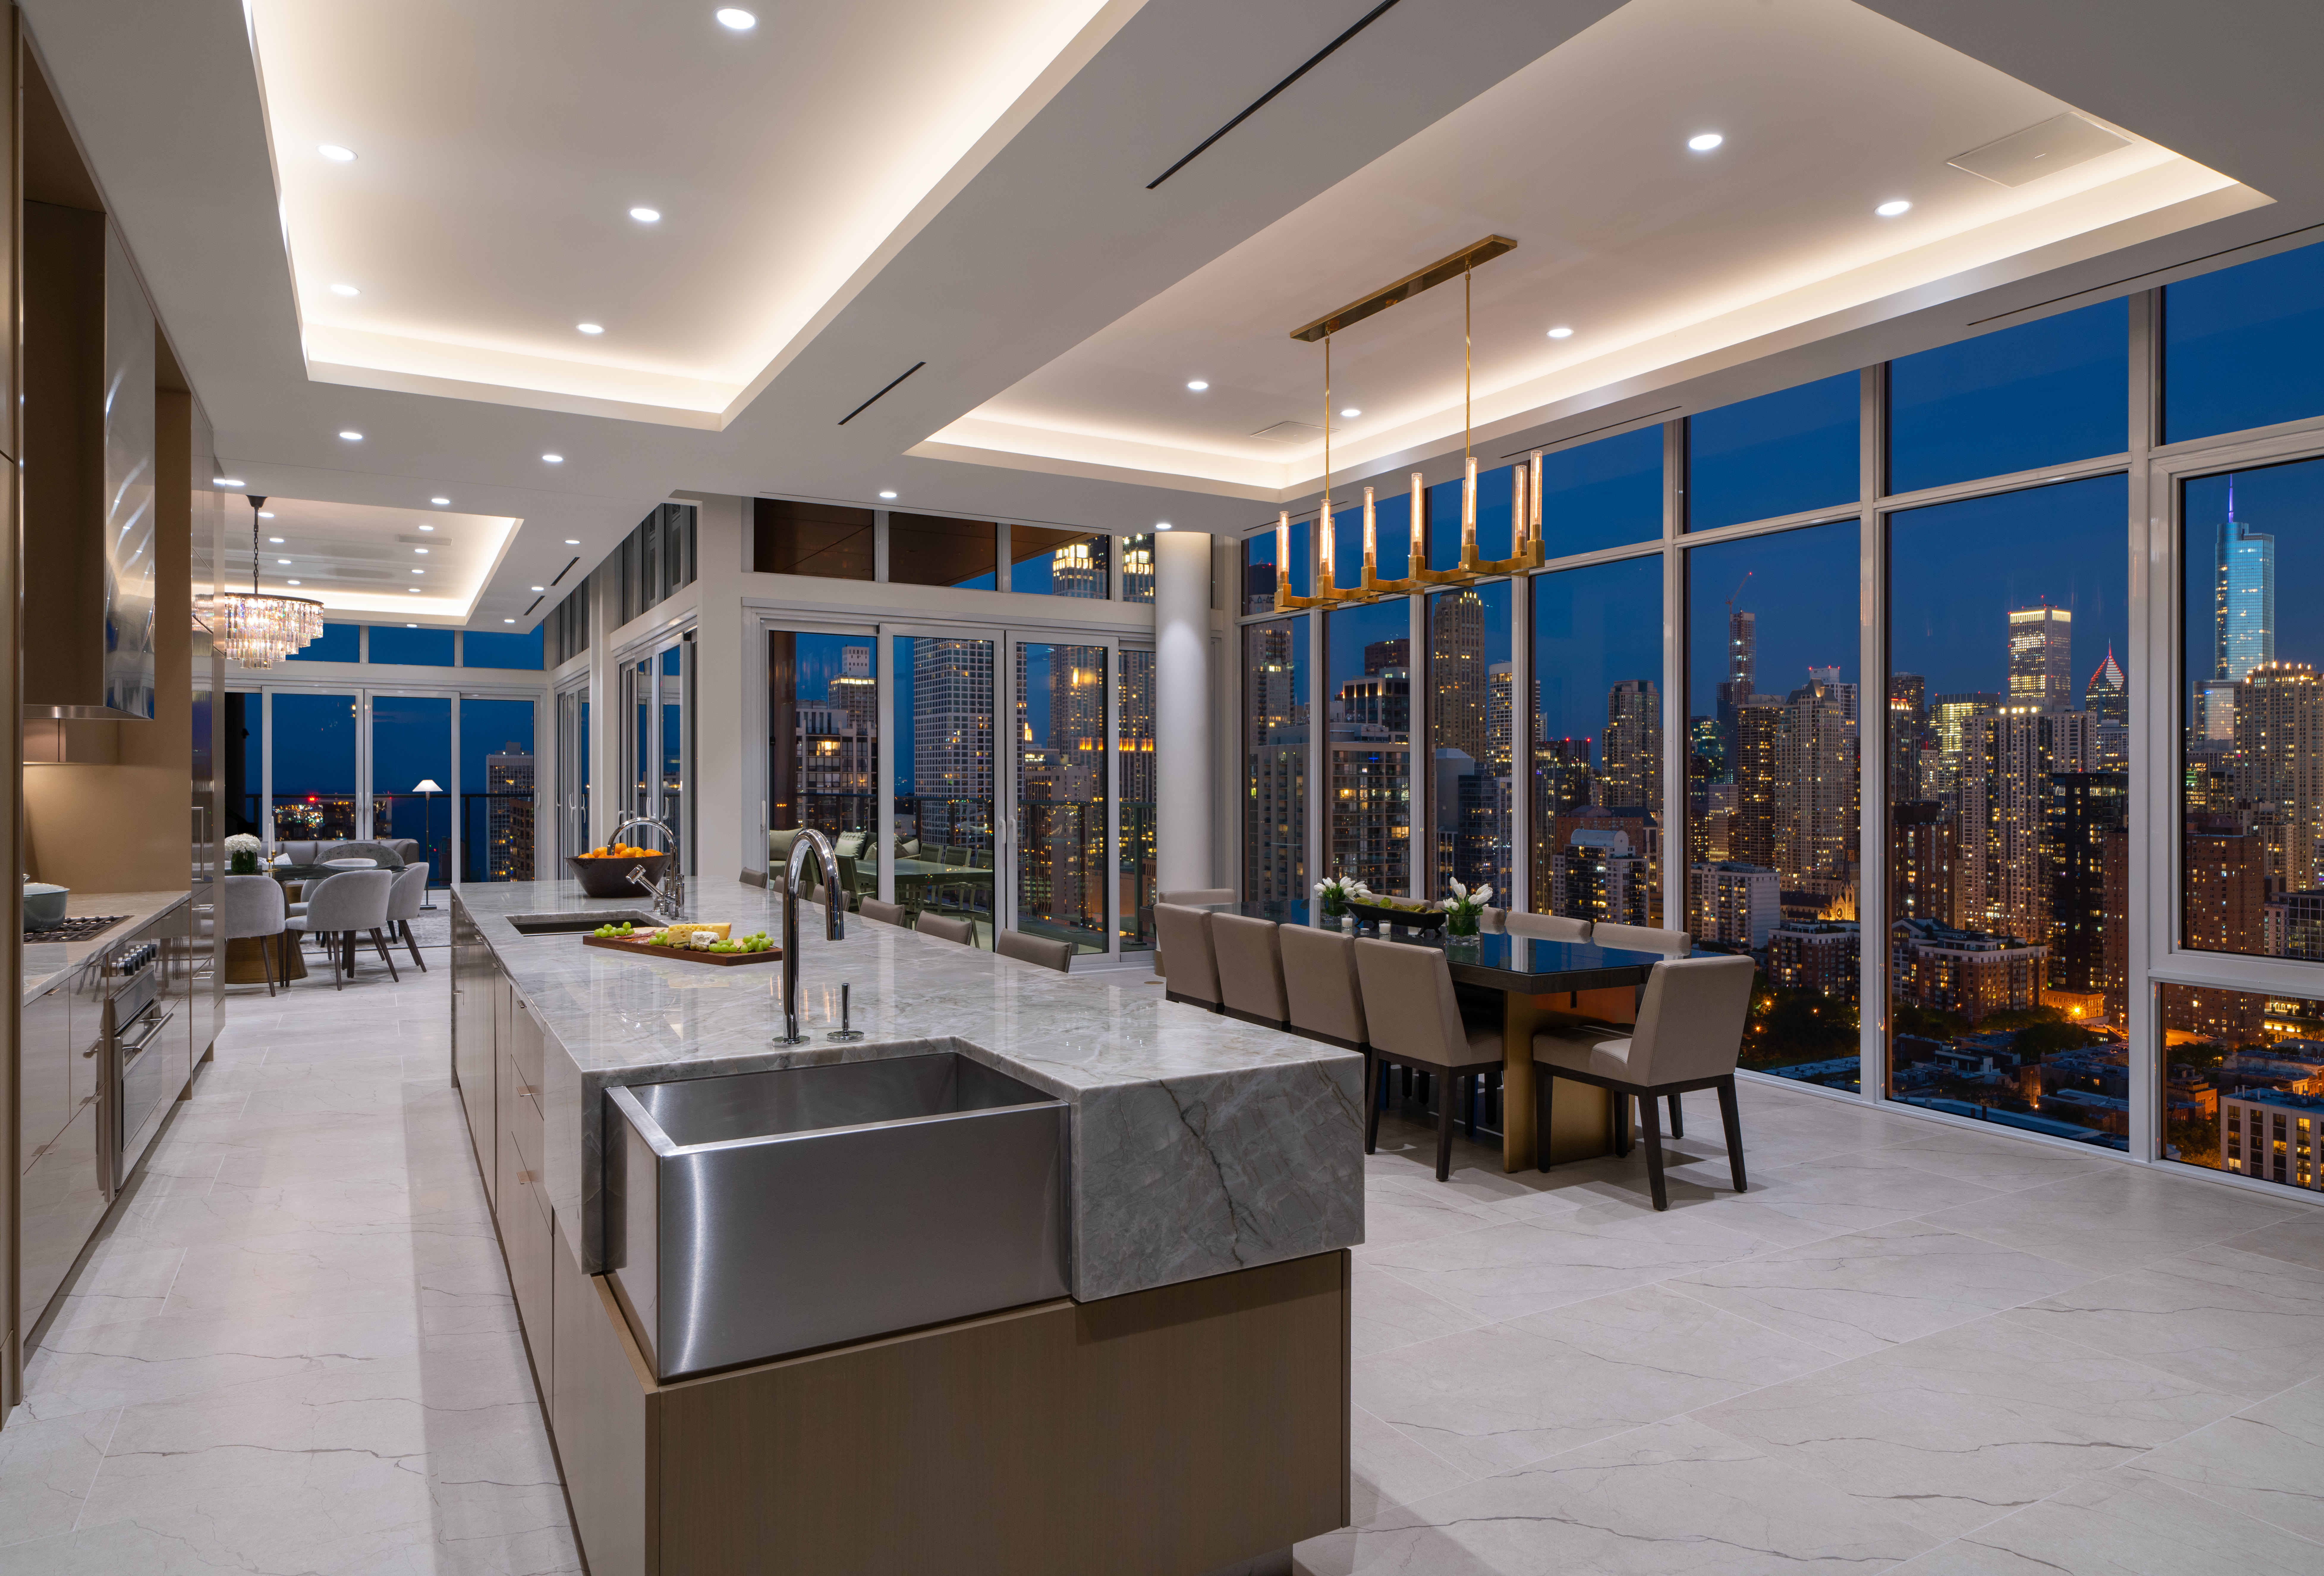 This $45K-per-month penthouse is Chicago's most expensive rental listing